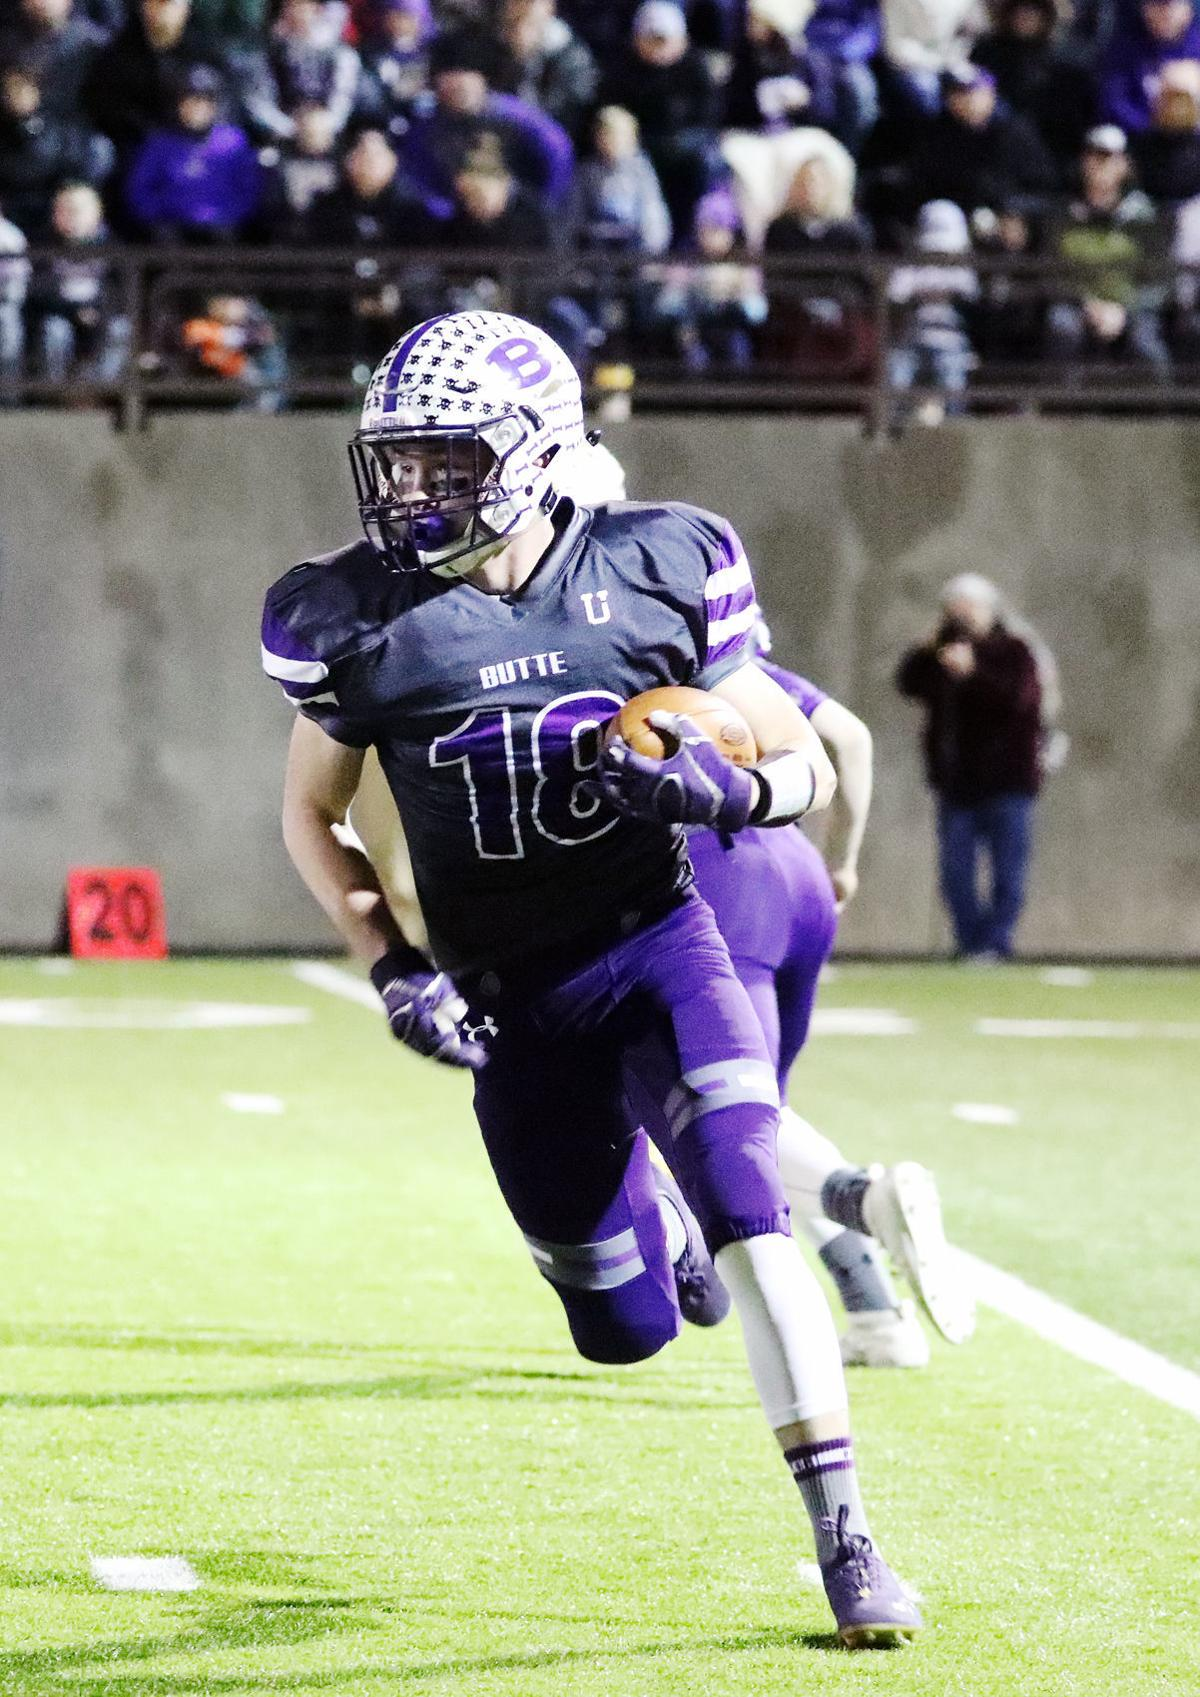 Butte Bulldogs roll through semifinals with a perfect season